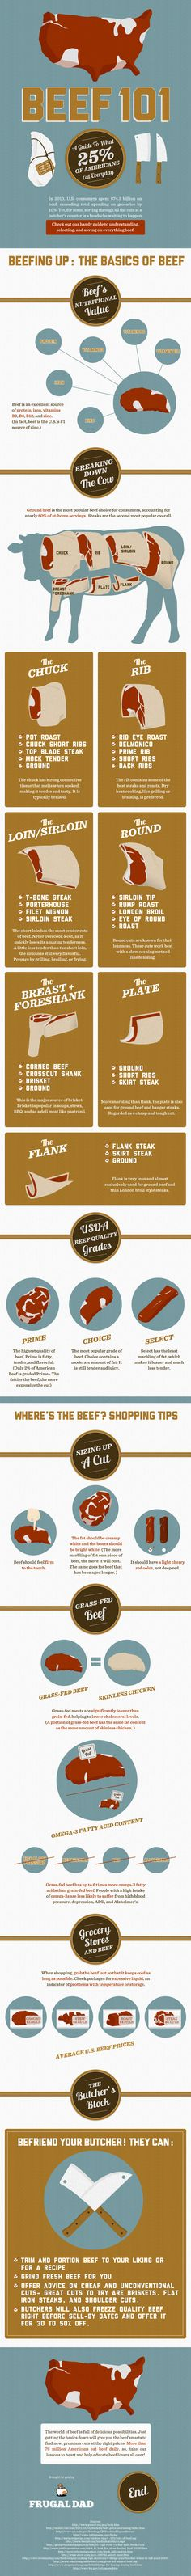 Beef 101: A Guide to What 25% of Americans Eat Everyday (Infographic)